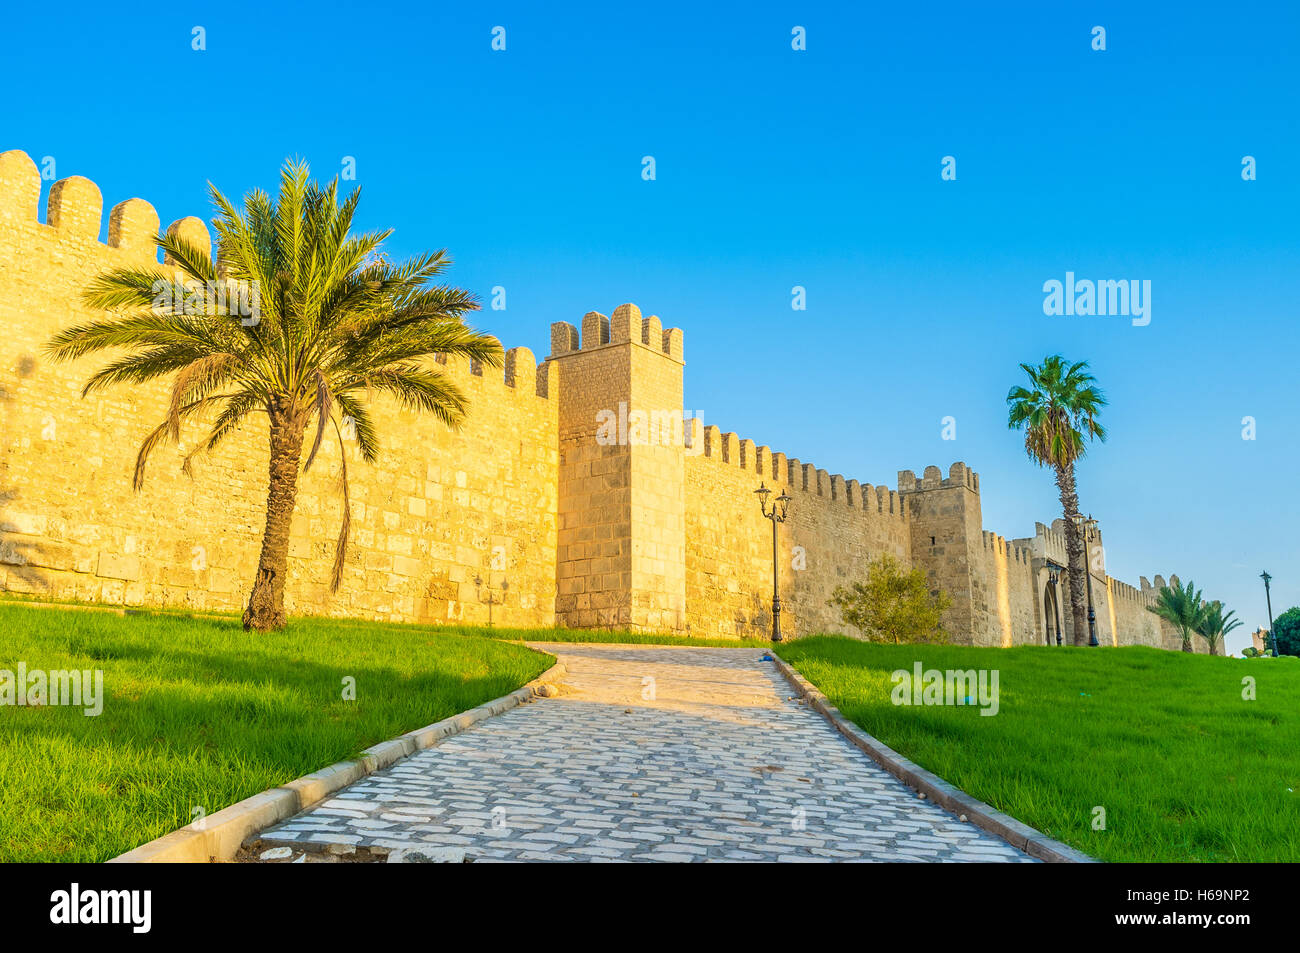 the medieval town wall is one of the best preserved and notable landmarks in Sousse, Tunisia. - Stock Image